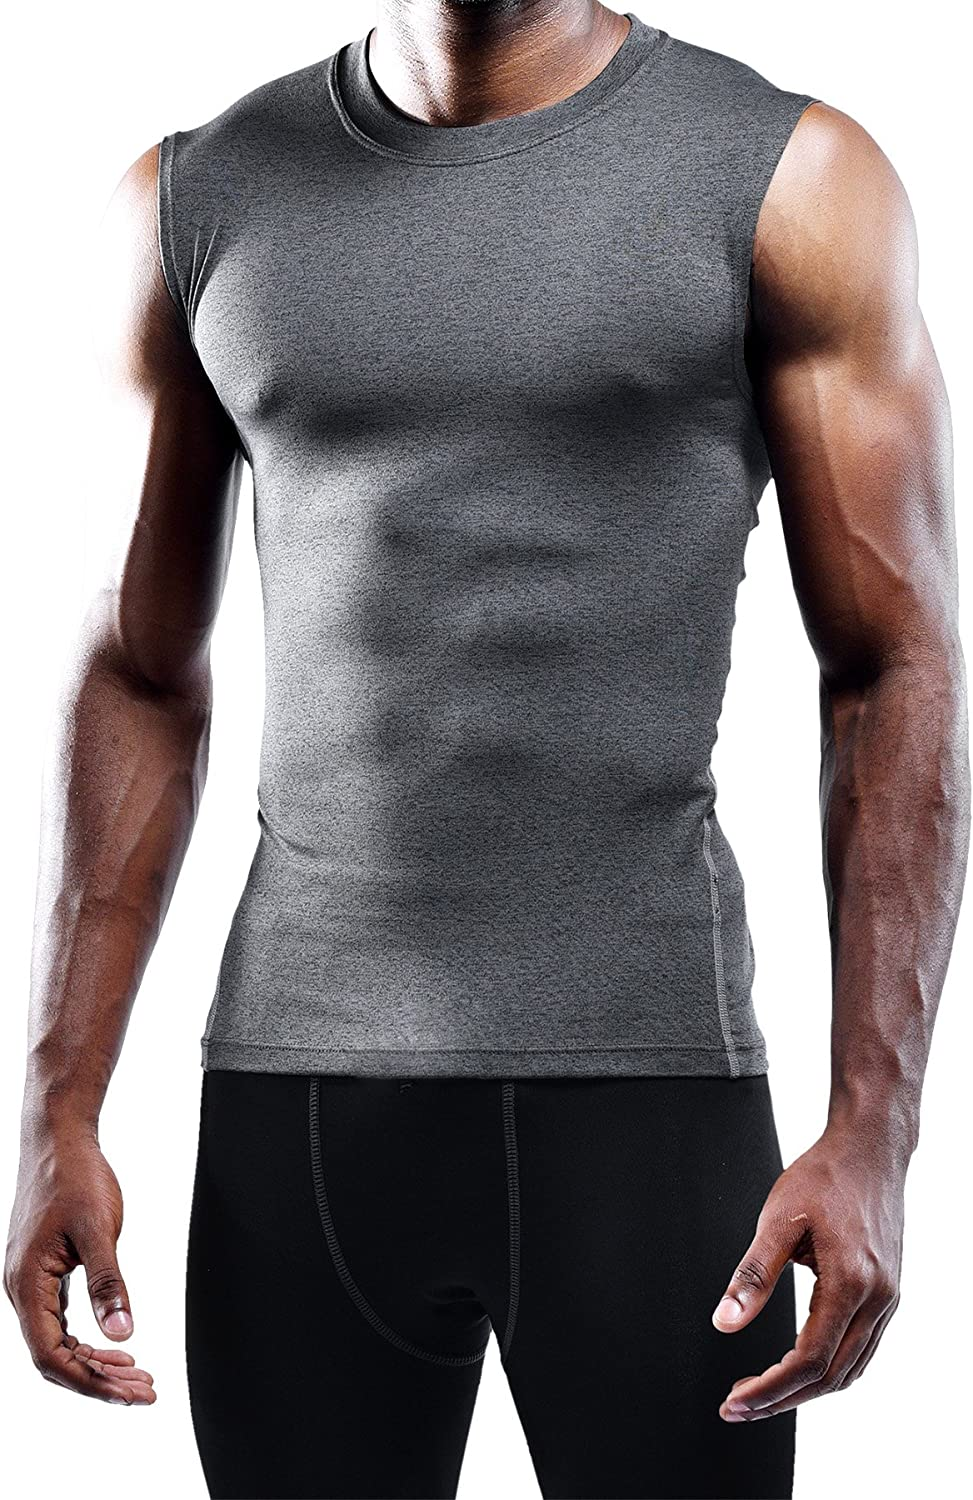 Neleus Mens 3 Pack Compression Athletic Muscle Sleeveless Tank Top